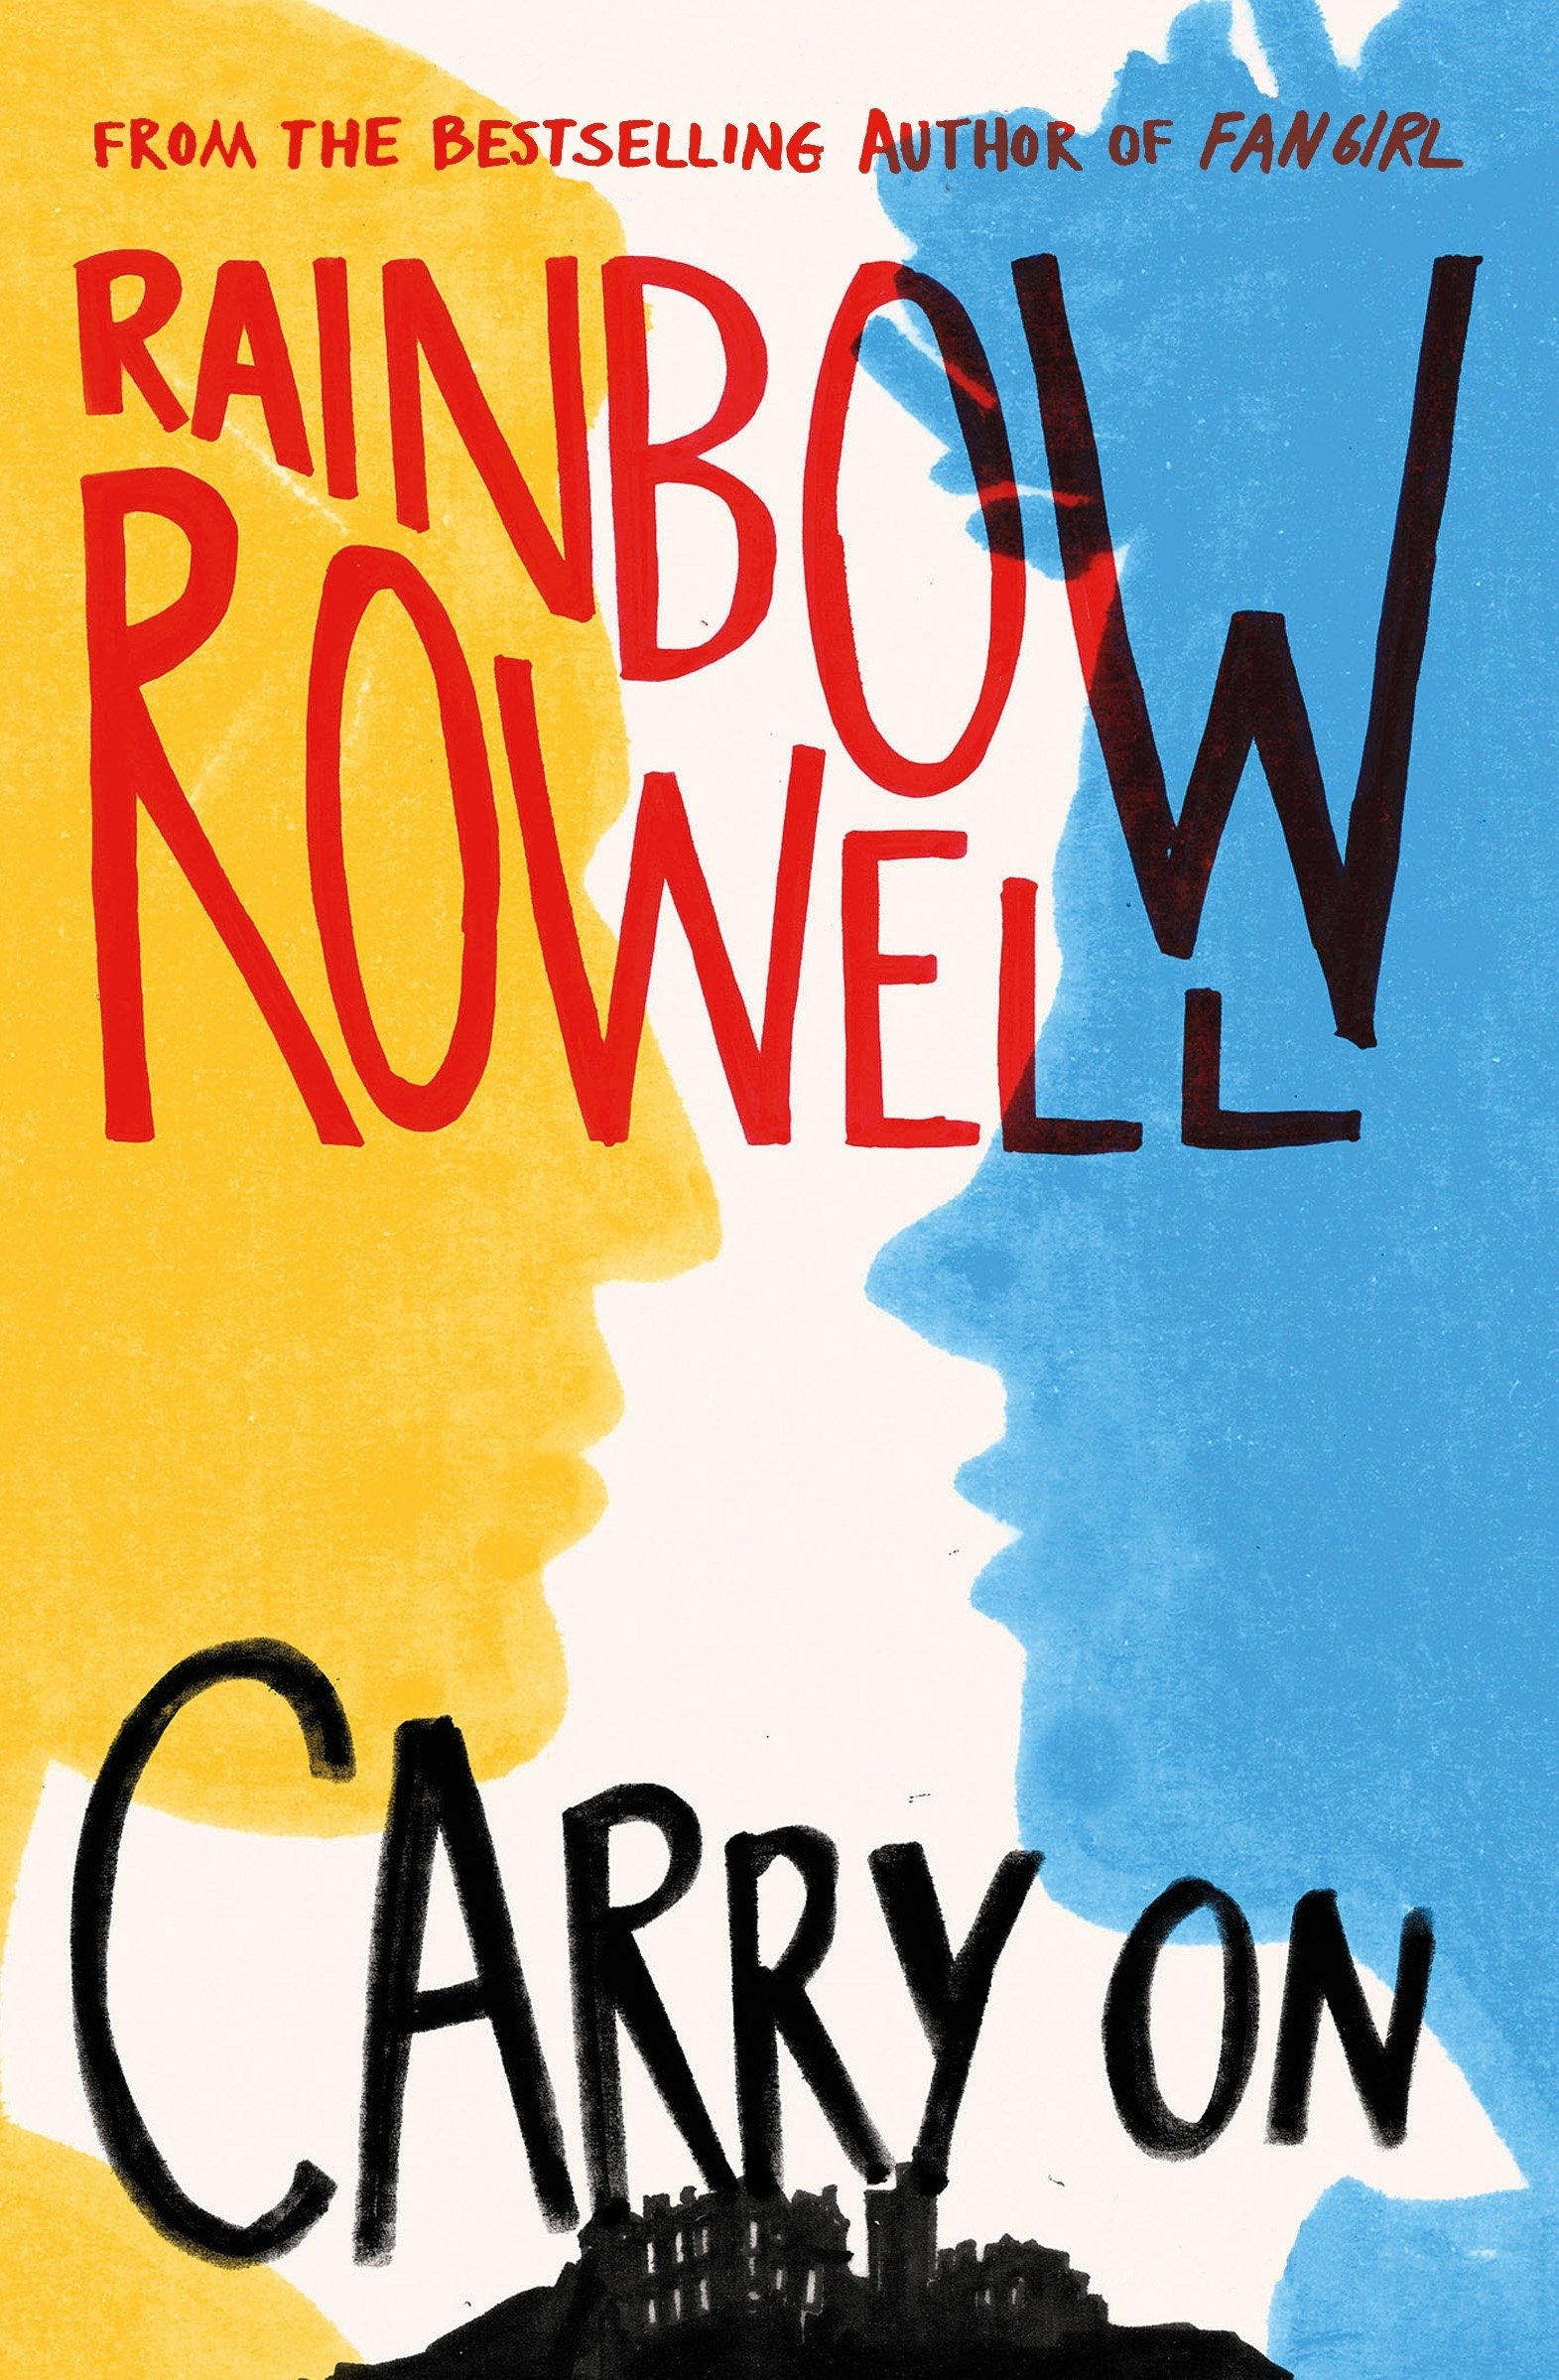 Carry On: Amazon.fr: Rowell, Rainbow: Livres anglais et étrangers